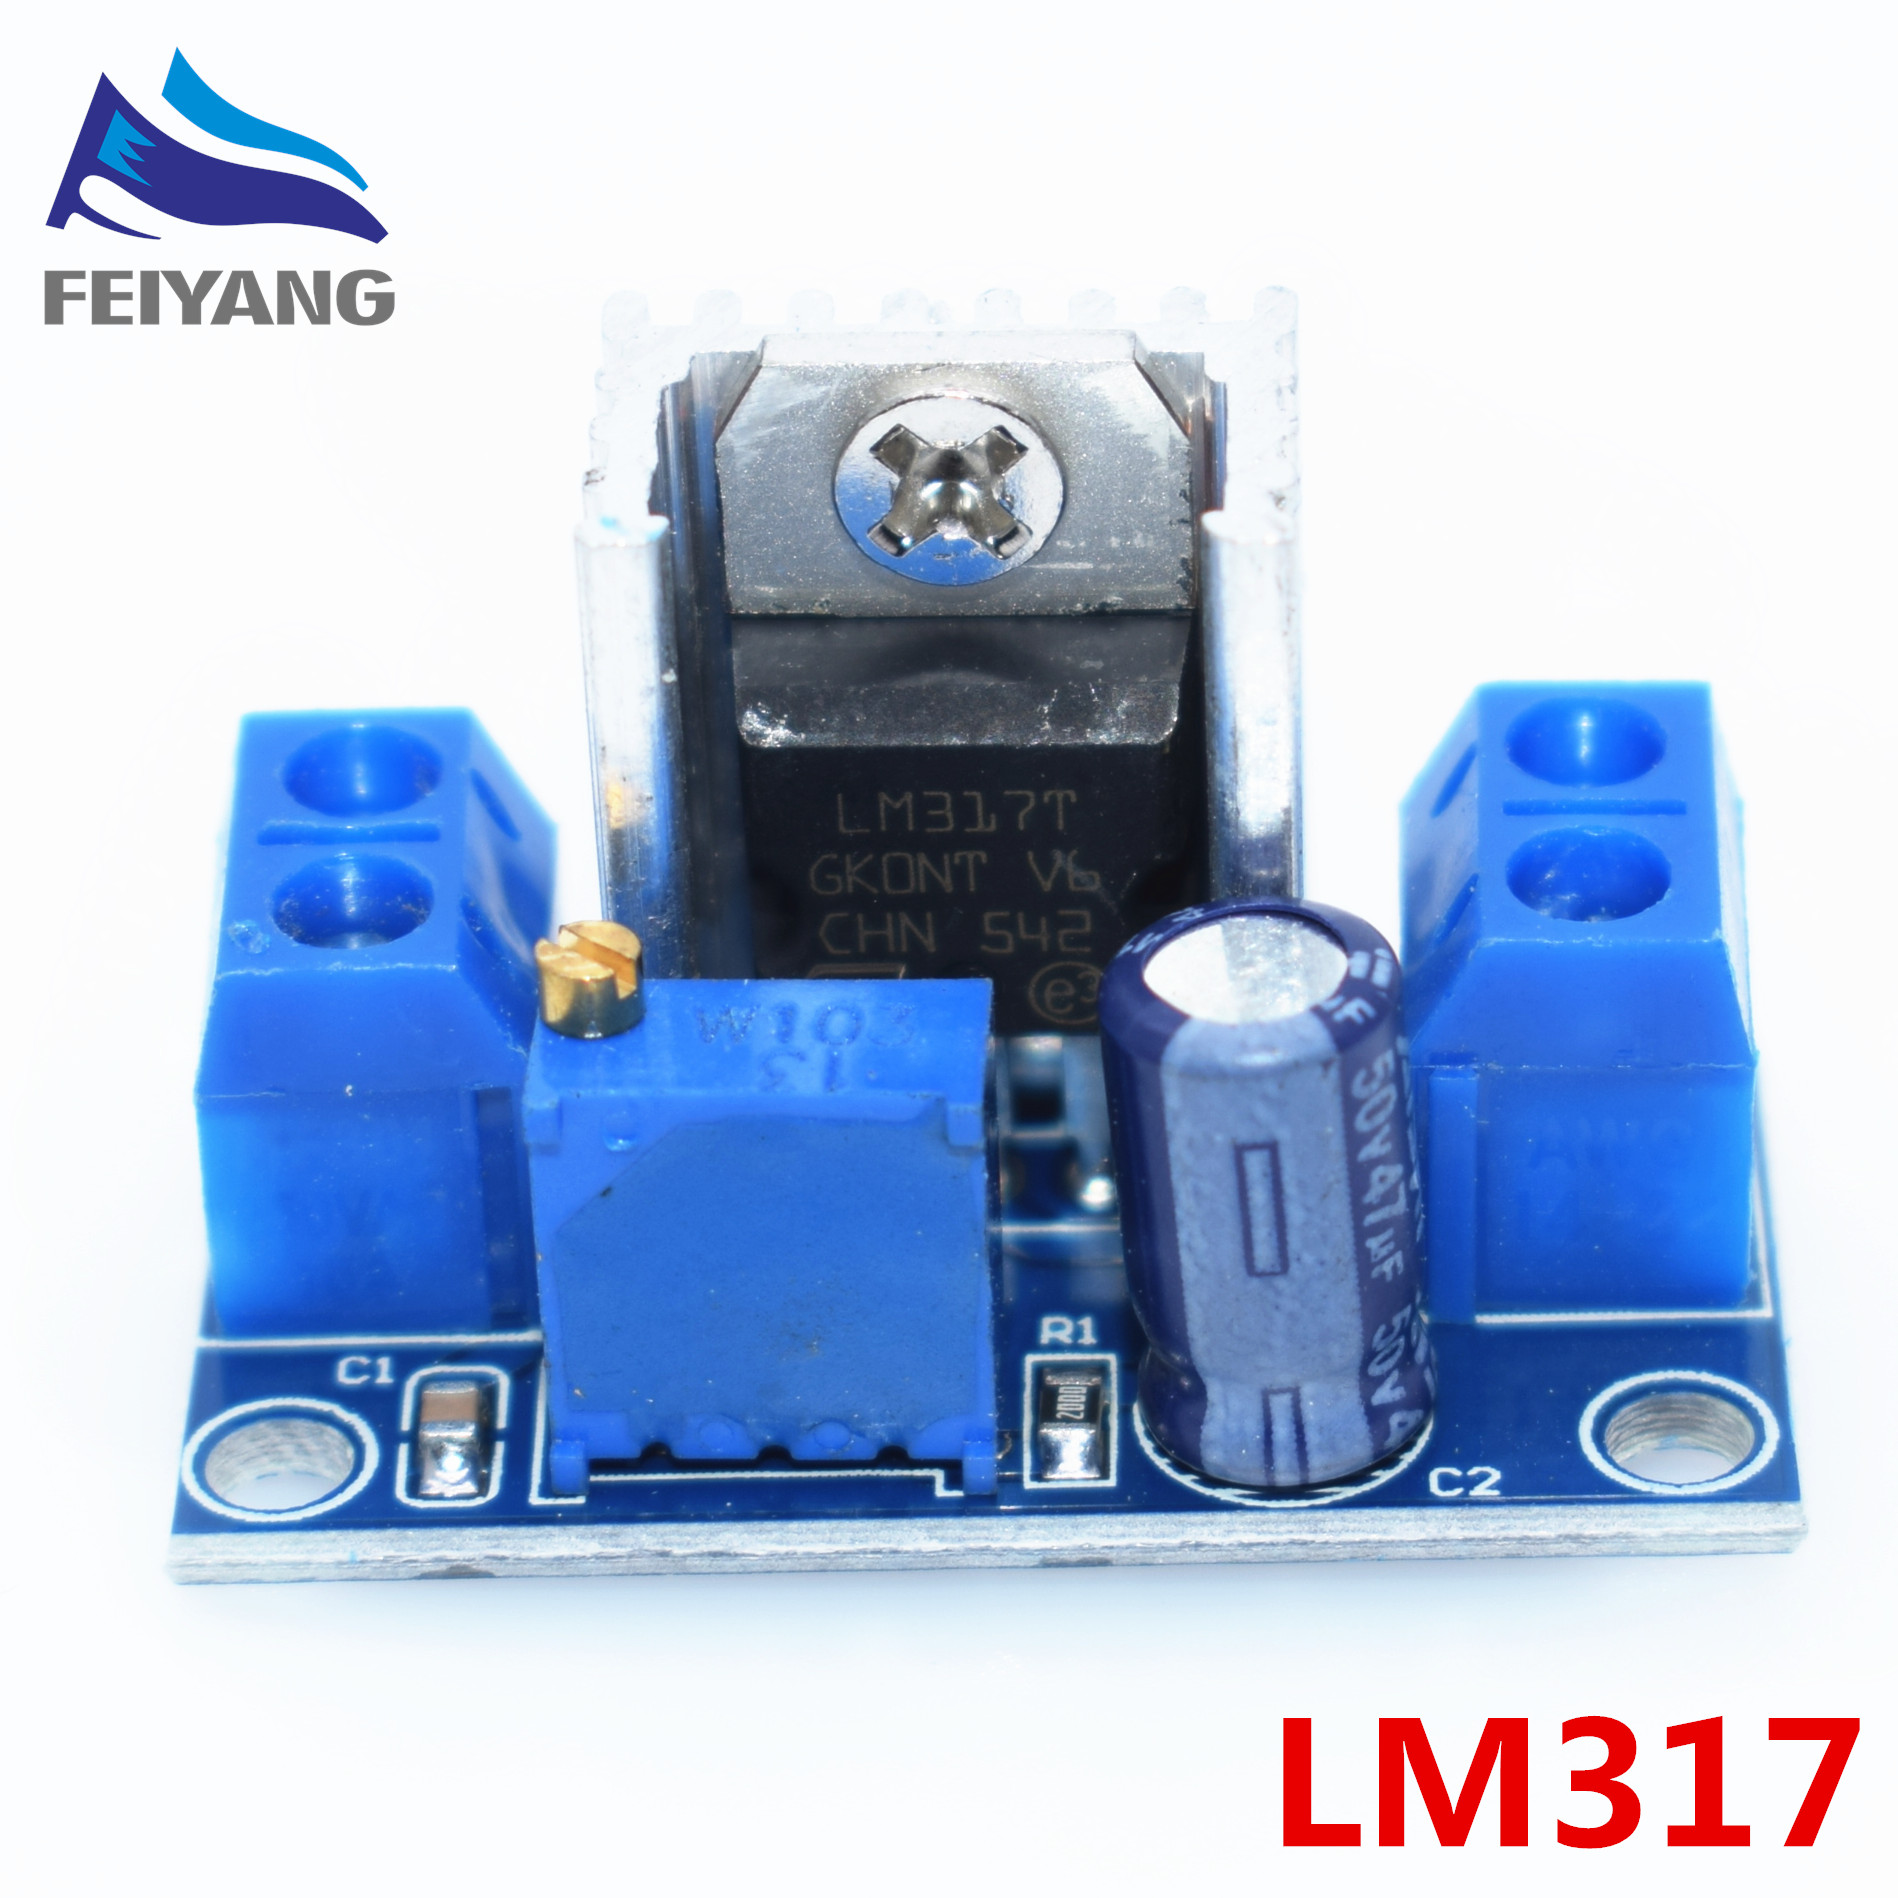 100pcs Lm317 Adjustable Voltage Regulator Power Supply Dc Converter Buck Step Down Circuit Board Module Linear In Integrated Circuits From